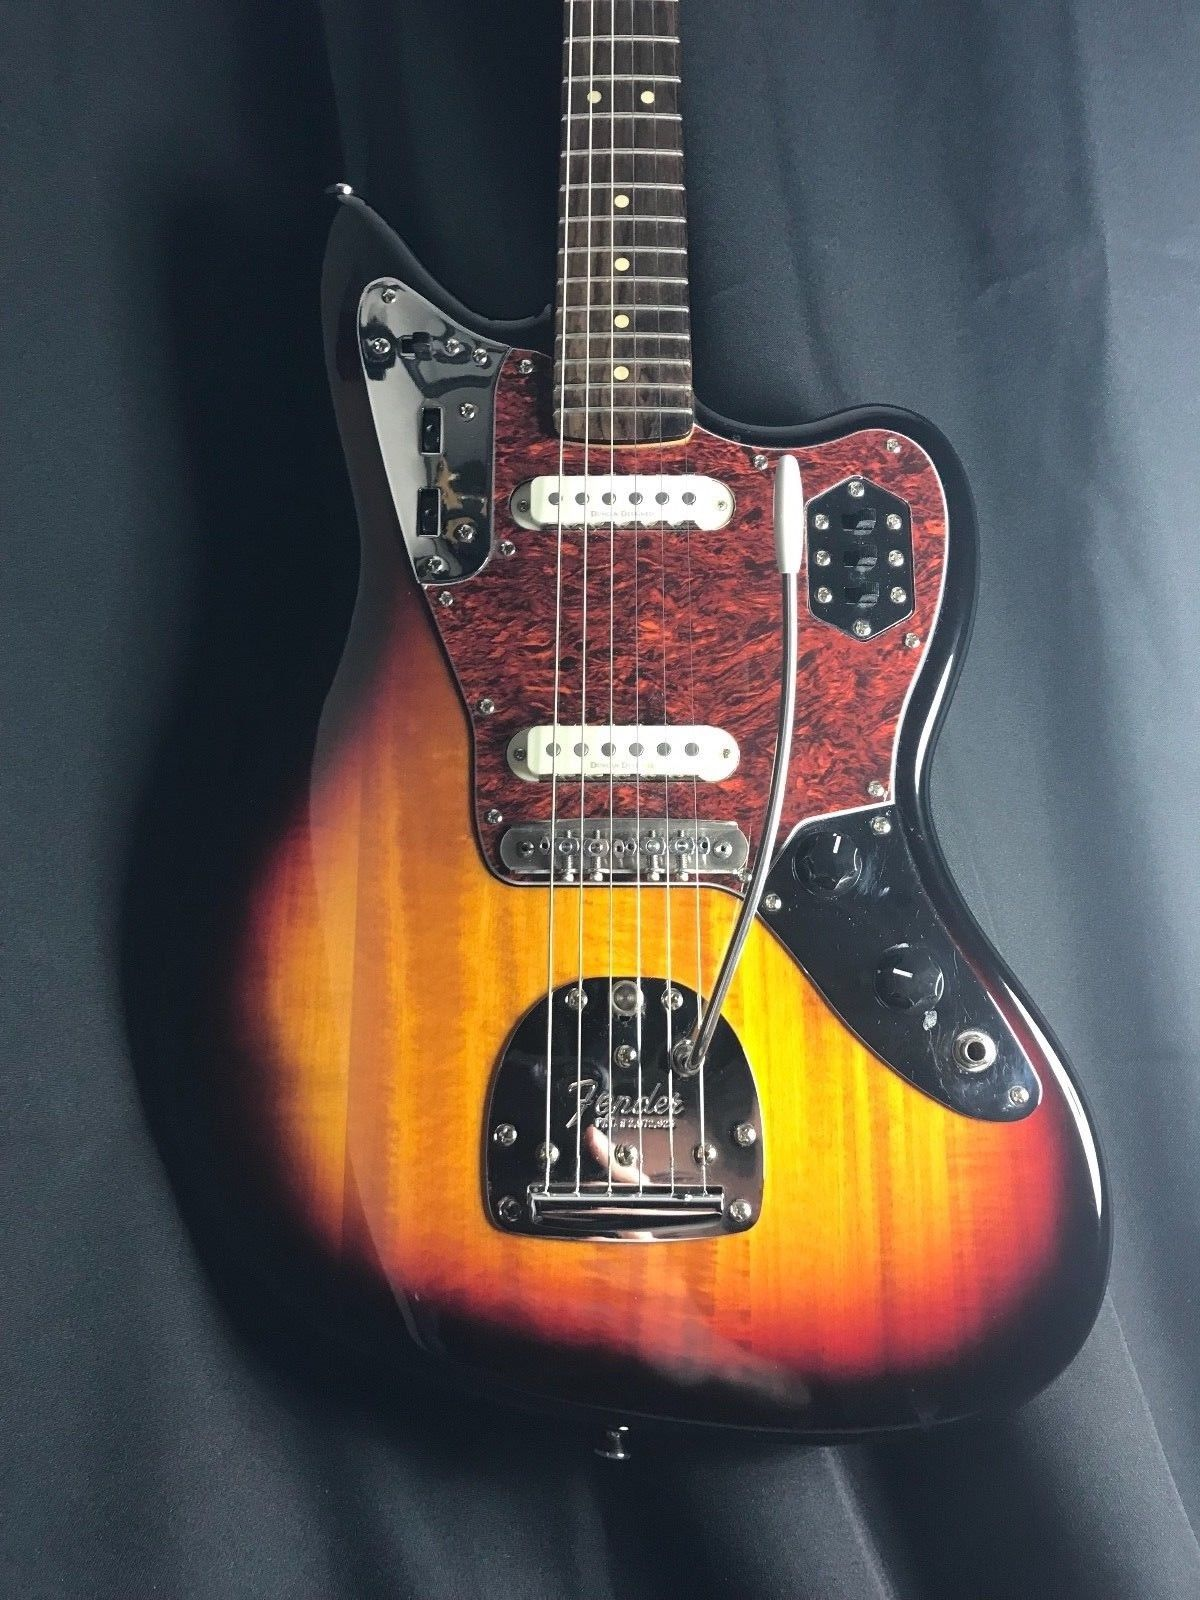 fender jaguar squire modified offset mastery bridge upgraded electric guitar eclectic sounds